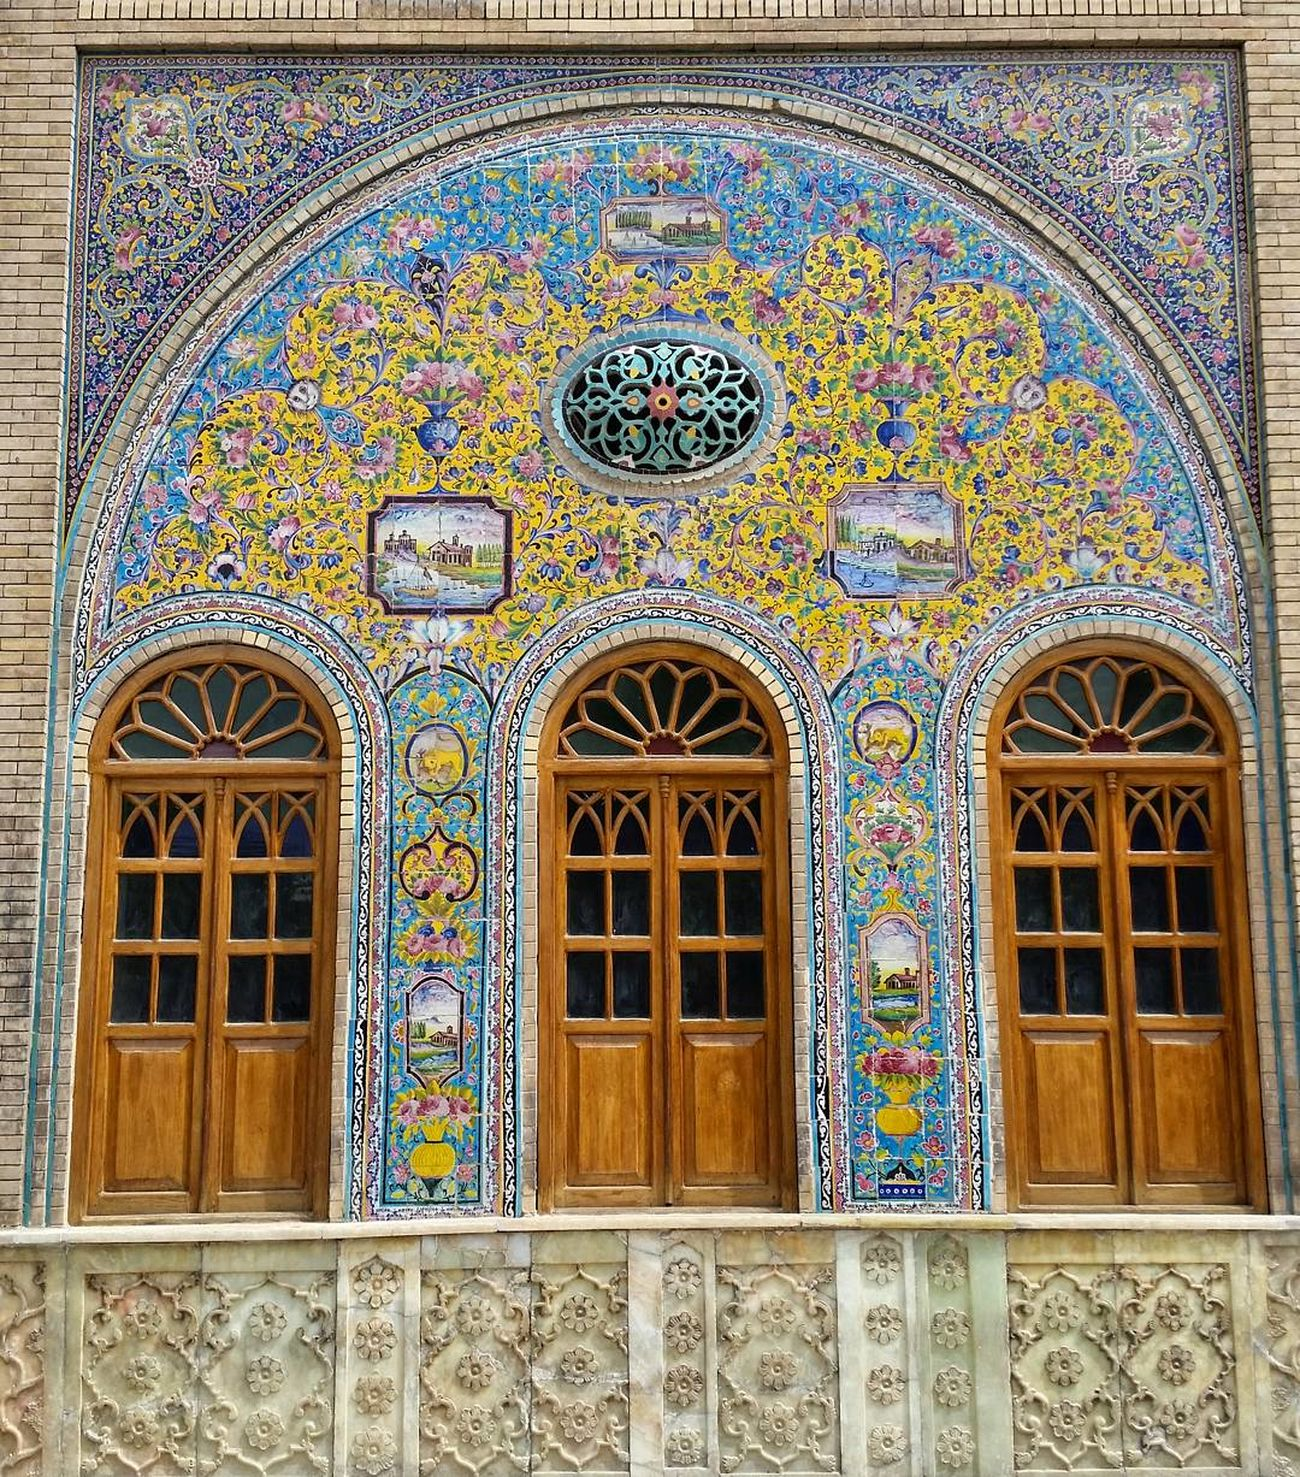 کاخ موزه گلستان تهران کاخ_گلستان ایران Iran Tehran Golestan Palace Window Pattern Ornate Design Multi Colored Architecture Day Tile Built Structure Full Frame No People Indoors